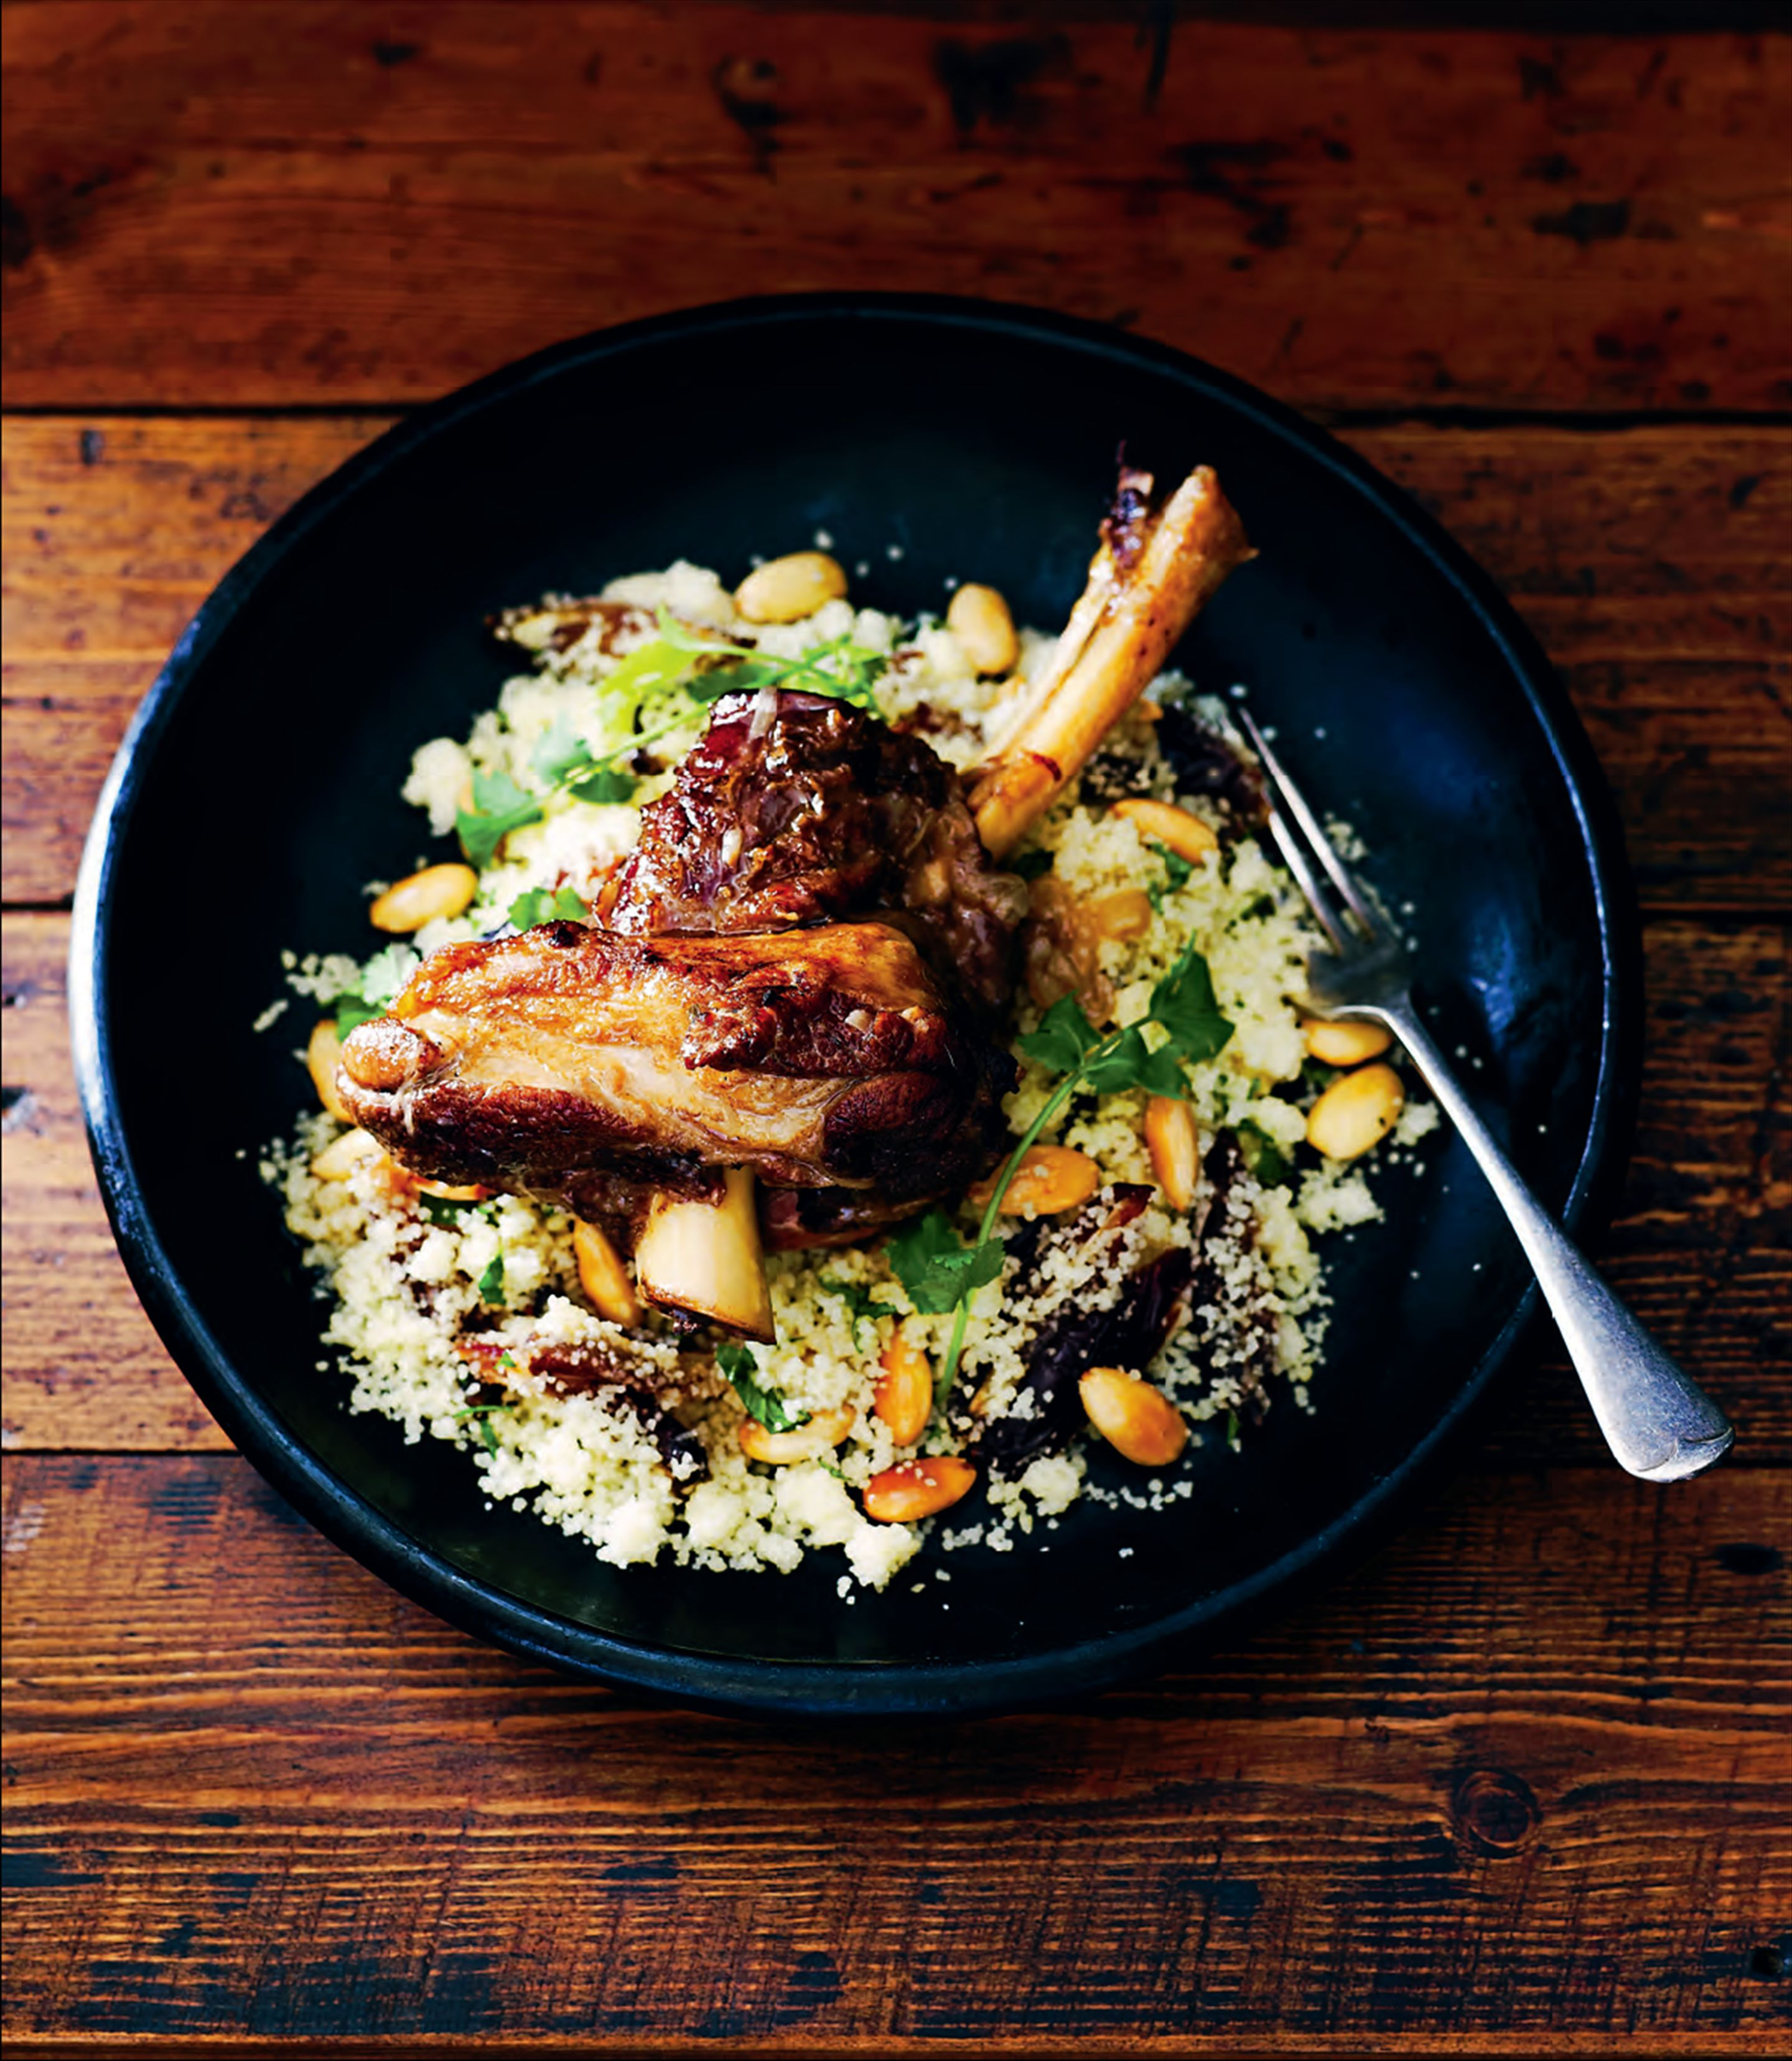 Moroccan spiced lamb shanks with date and roasted almond couscous